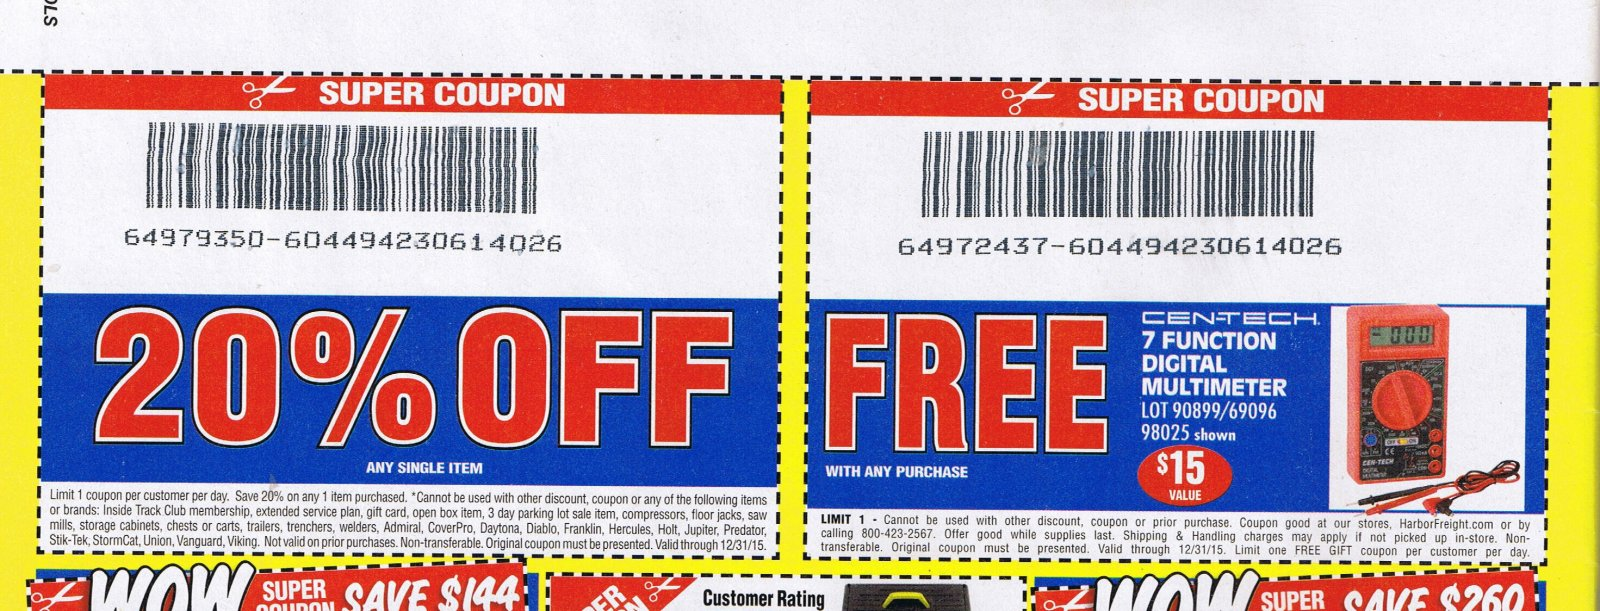 Click image for larger version  Name:hf coupons.jpg Views:57 Size:284.9 KB ID:253689